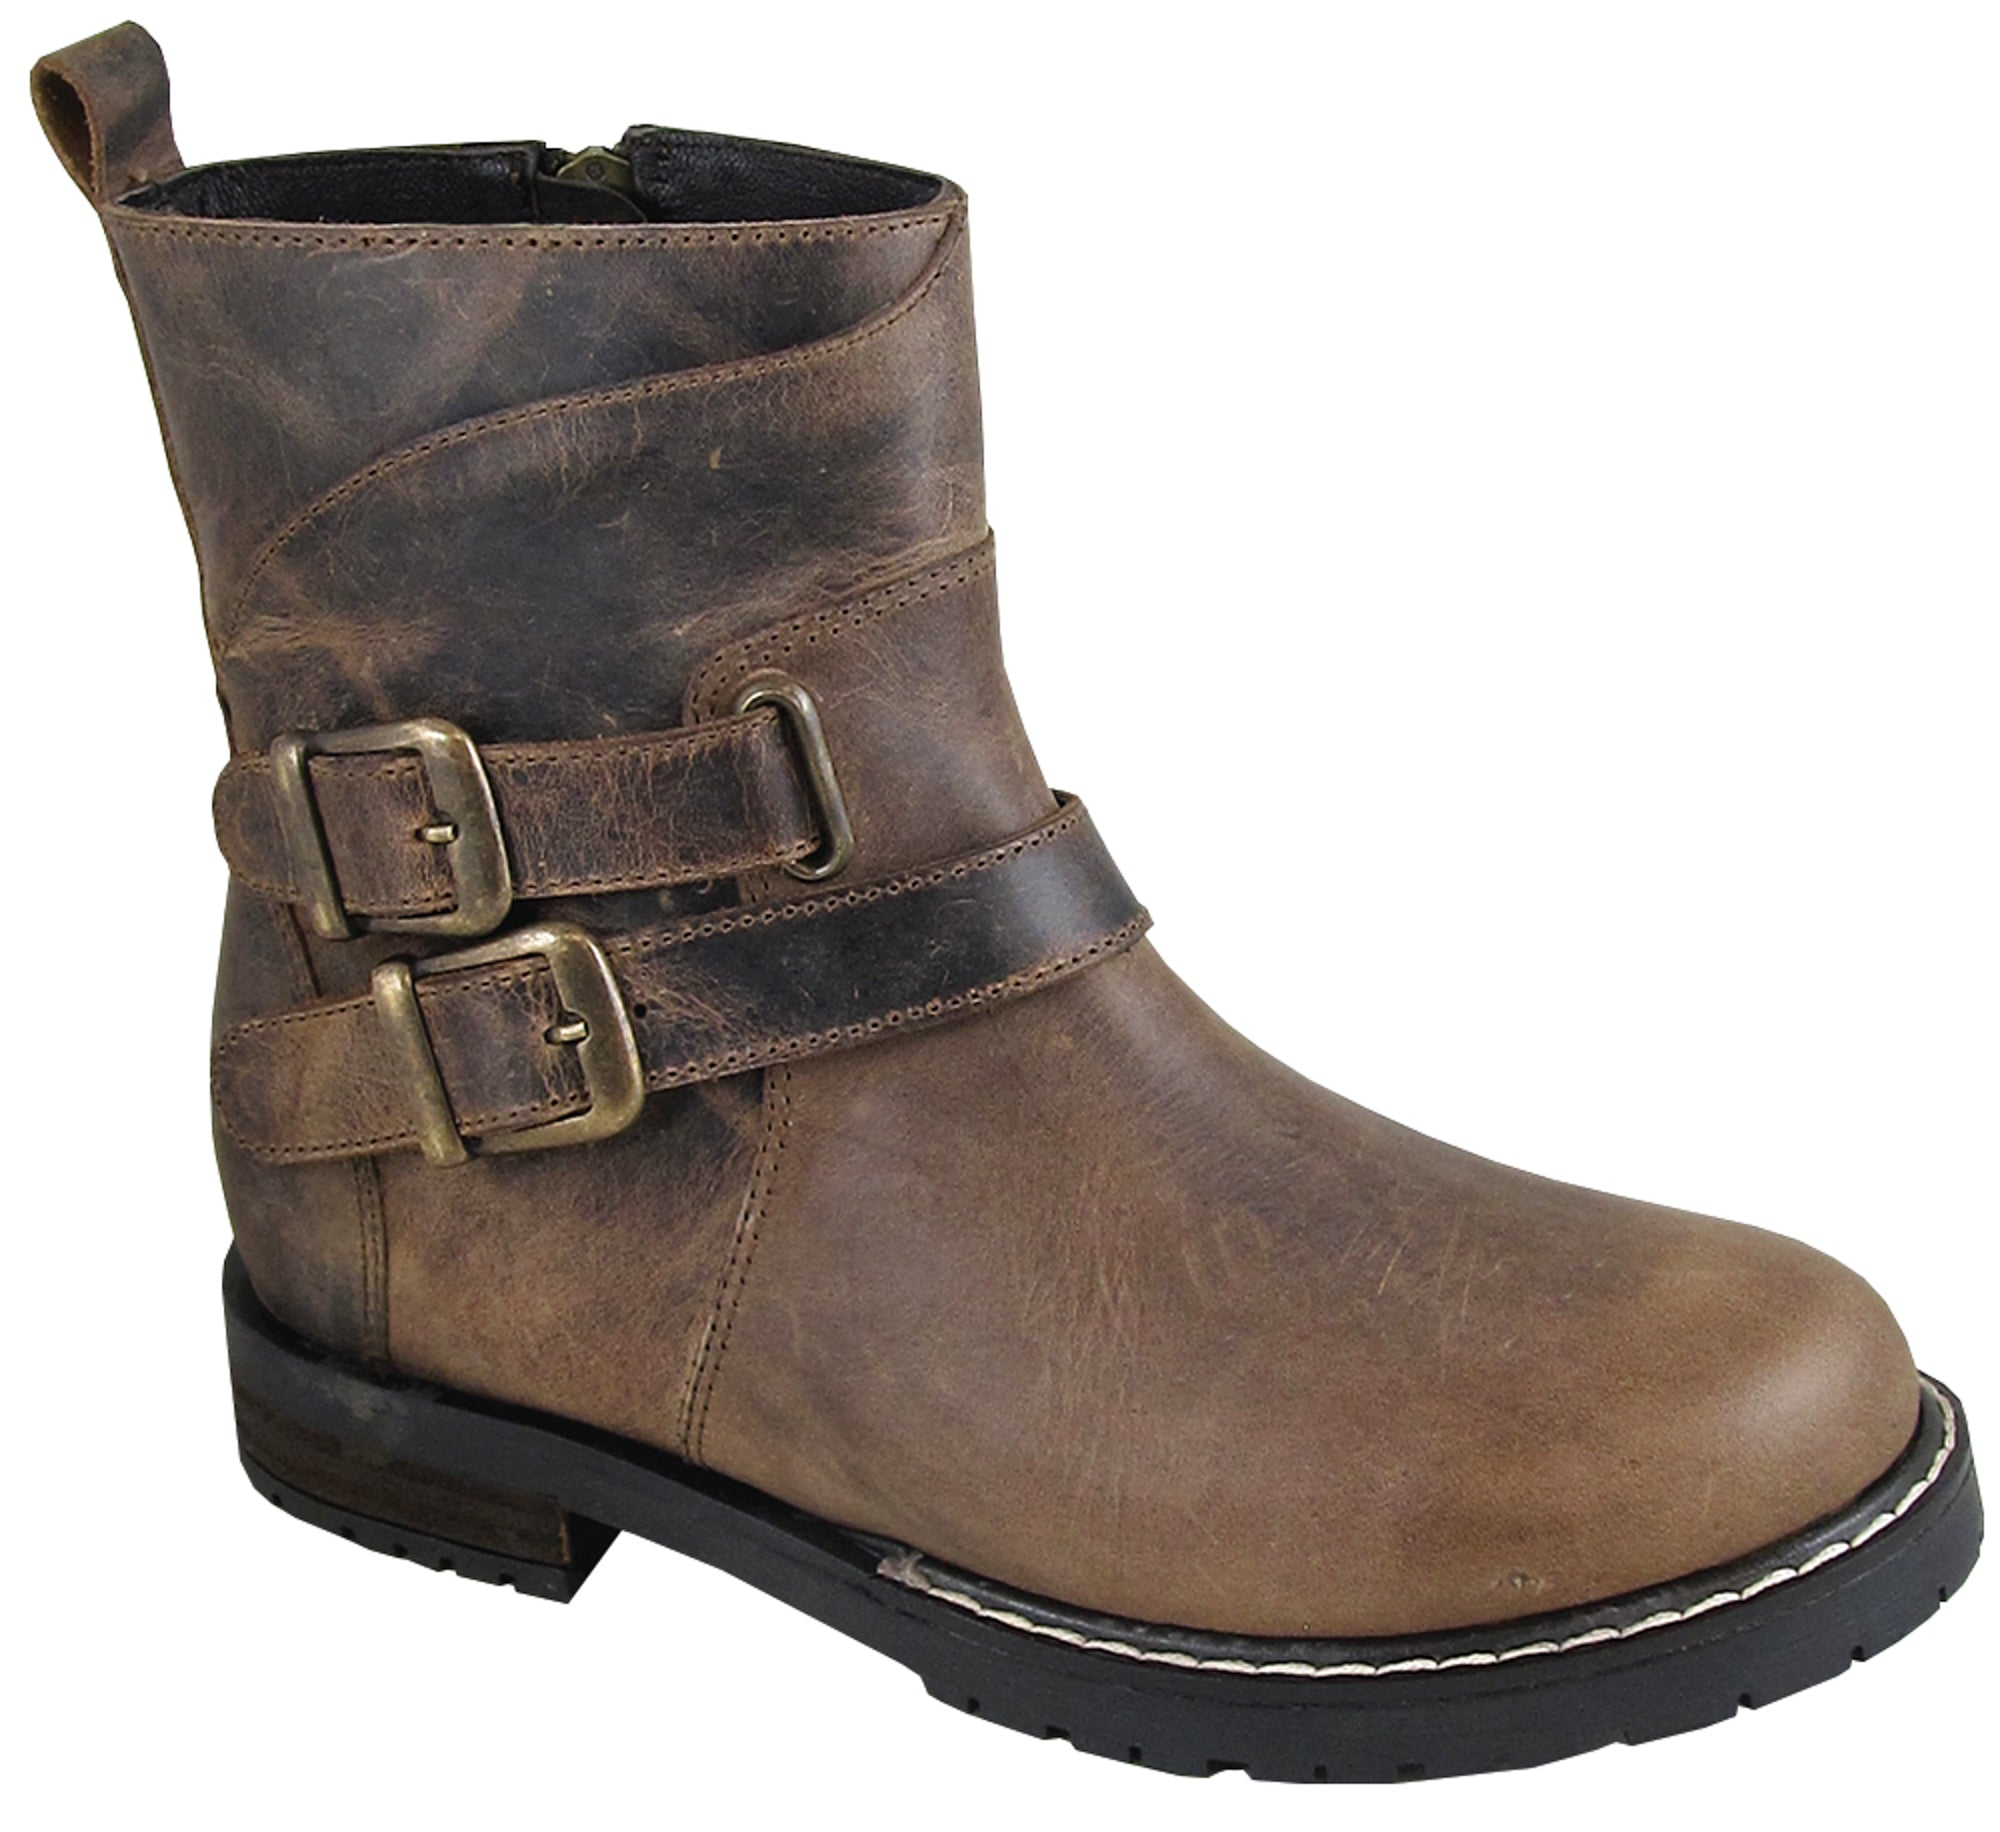 Smoky Mountain Women's Dylan Round Toe Slip On with Double Buckle Brown Waxed Distress Boots